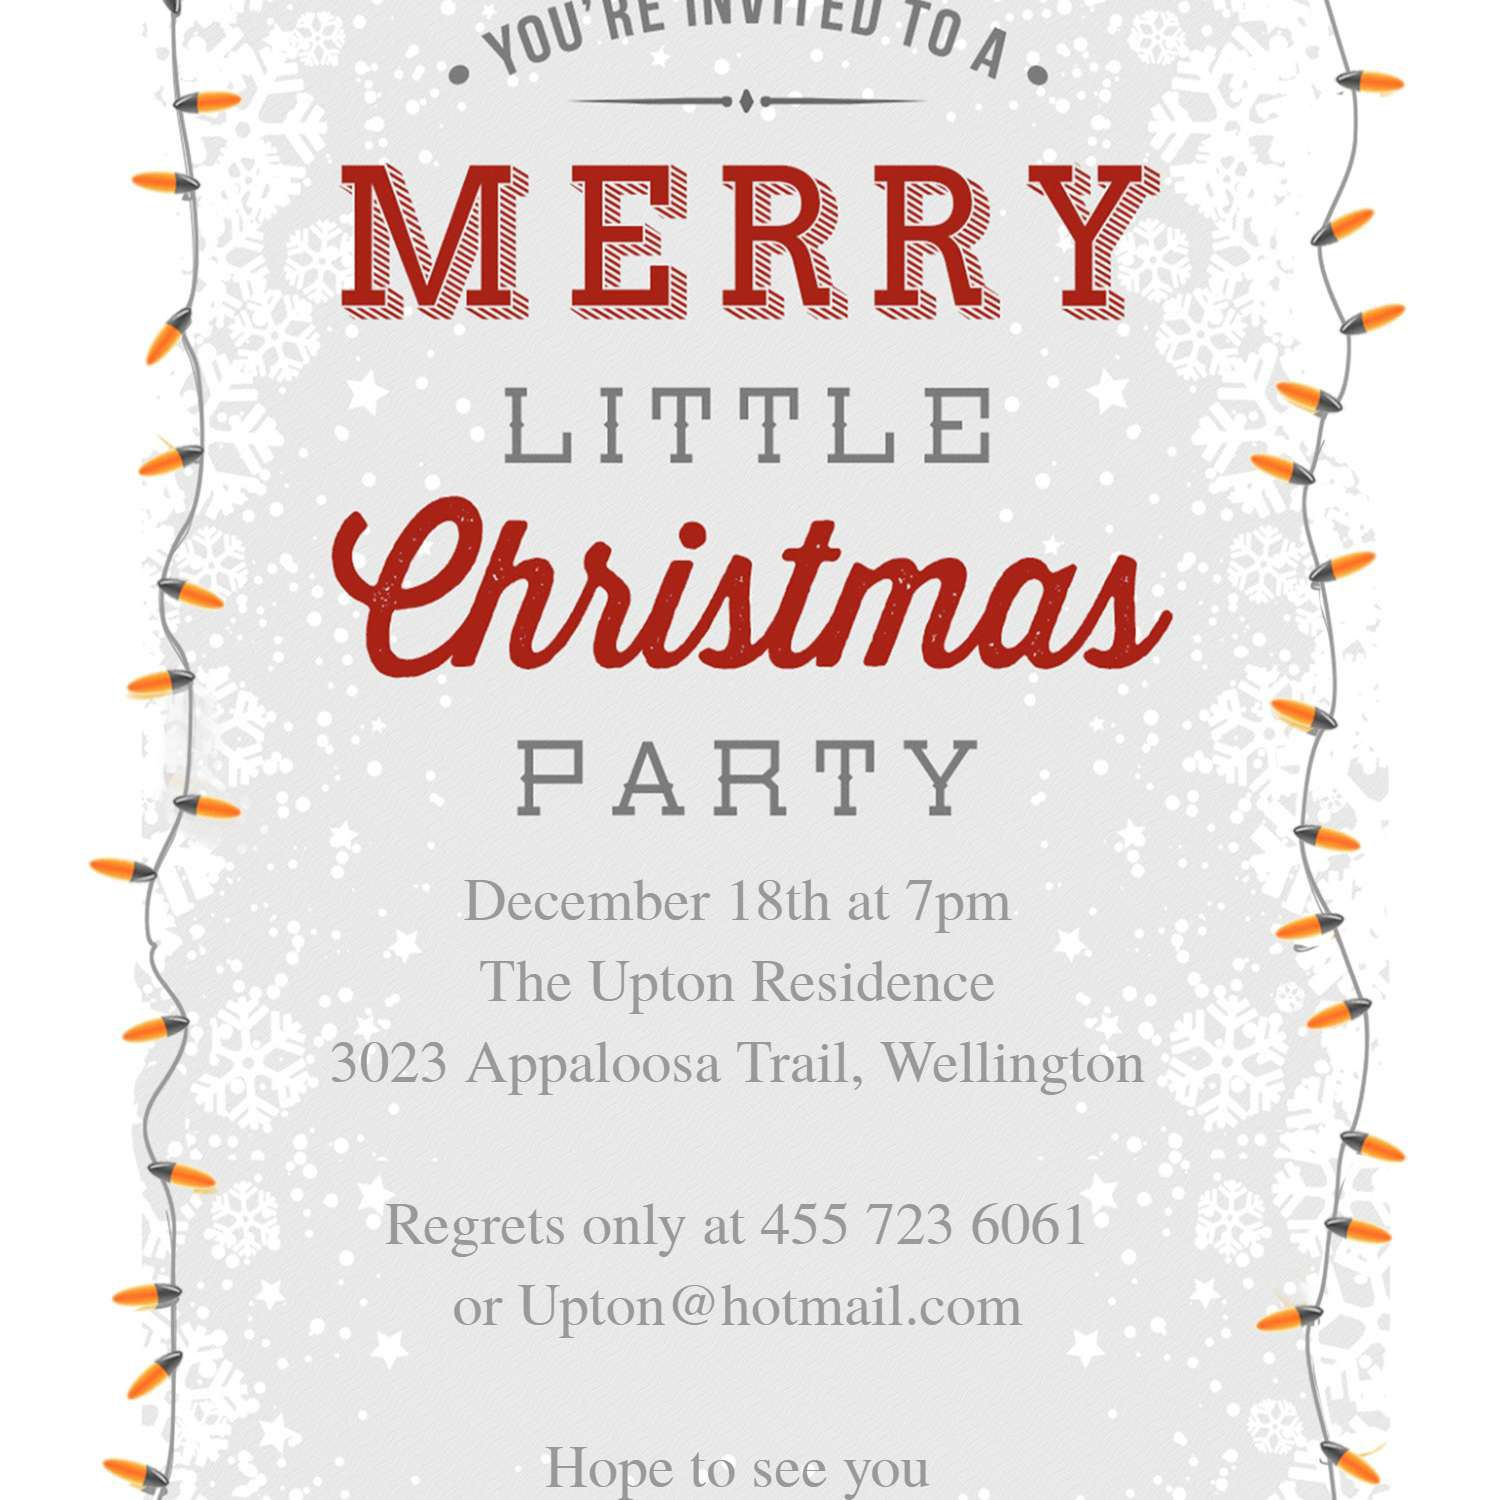 008 Awful Free Holiday Party Flyer Template Word Image Full